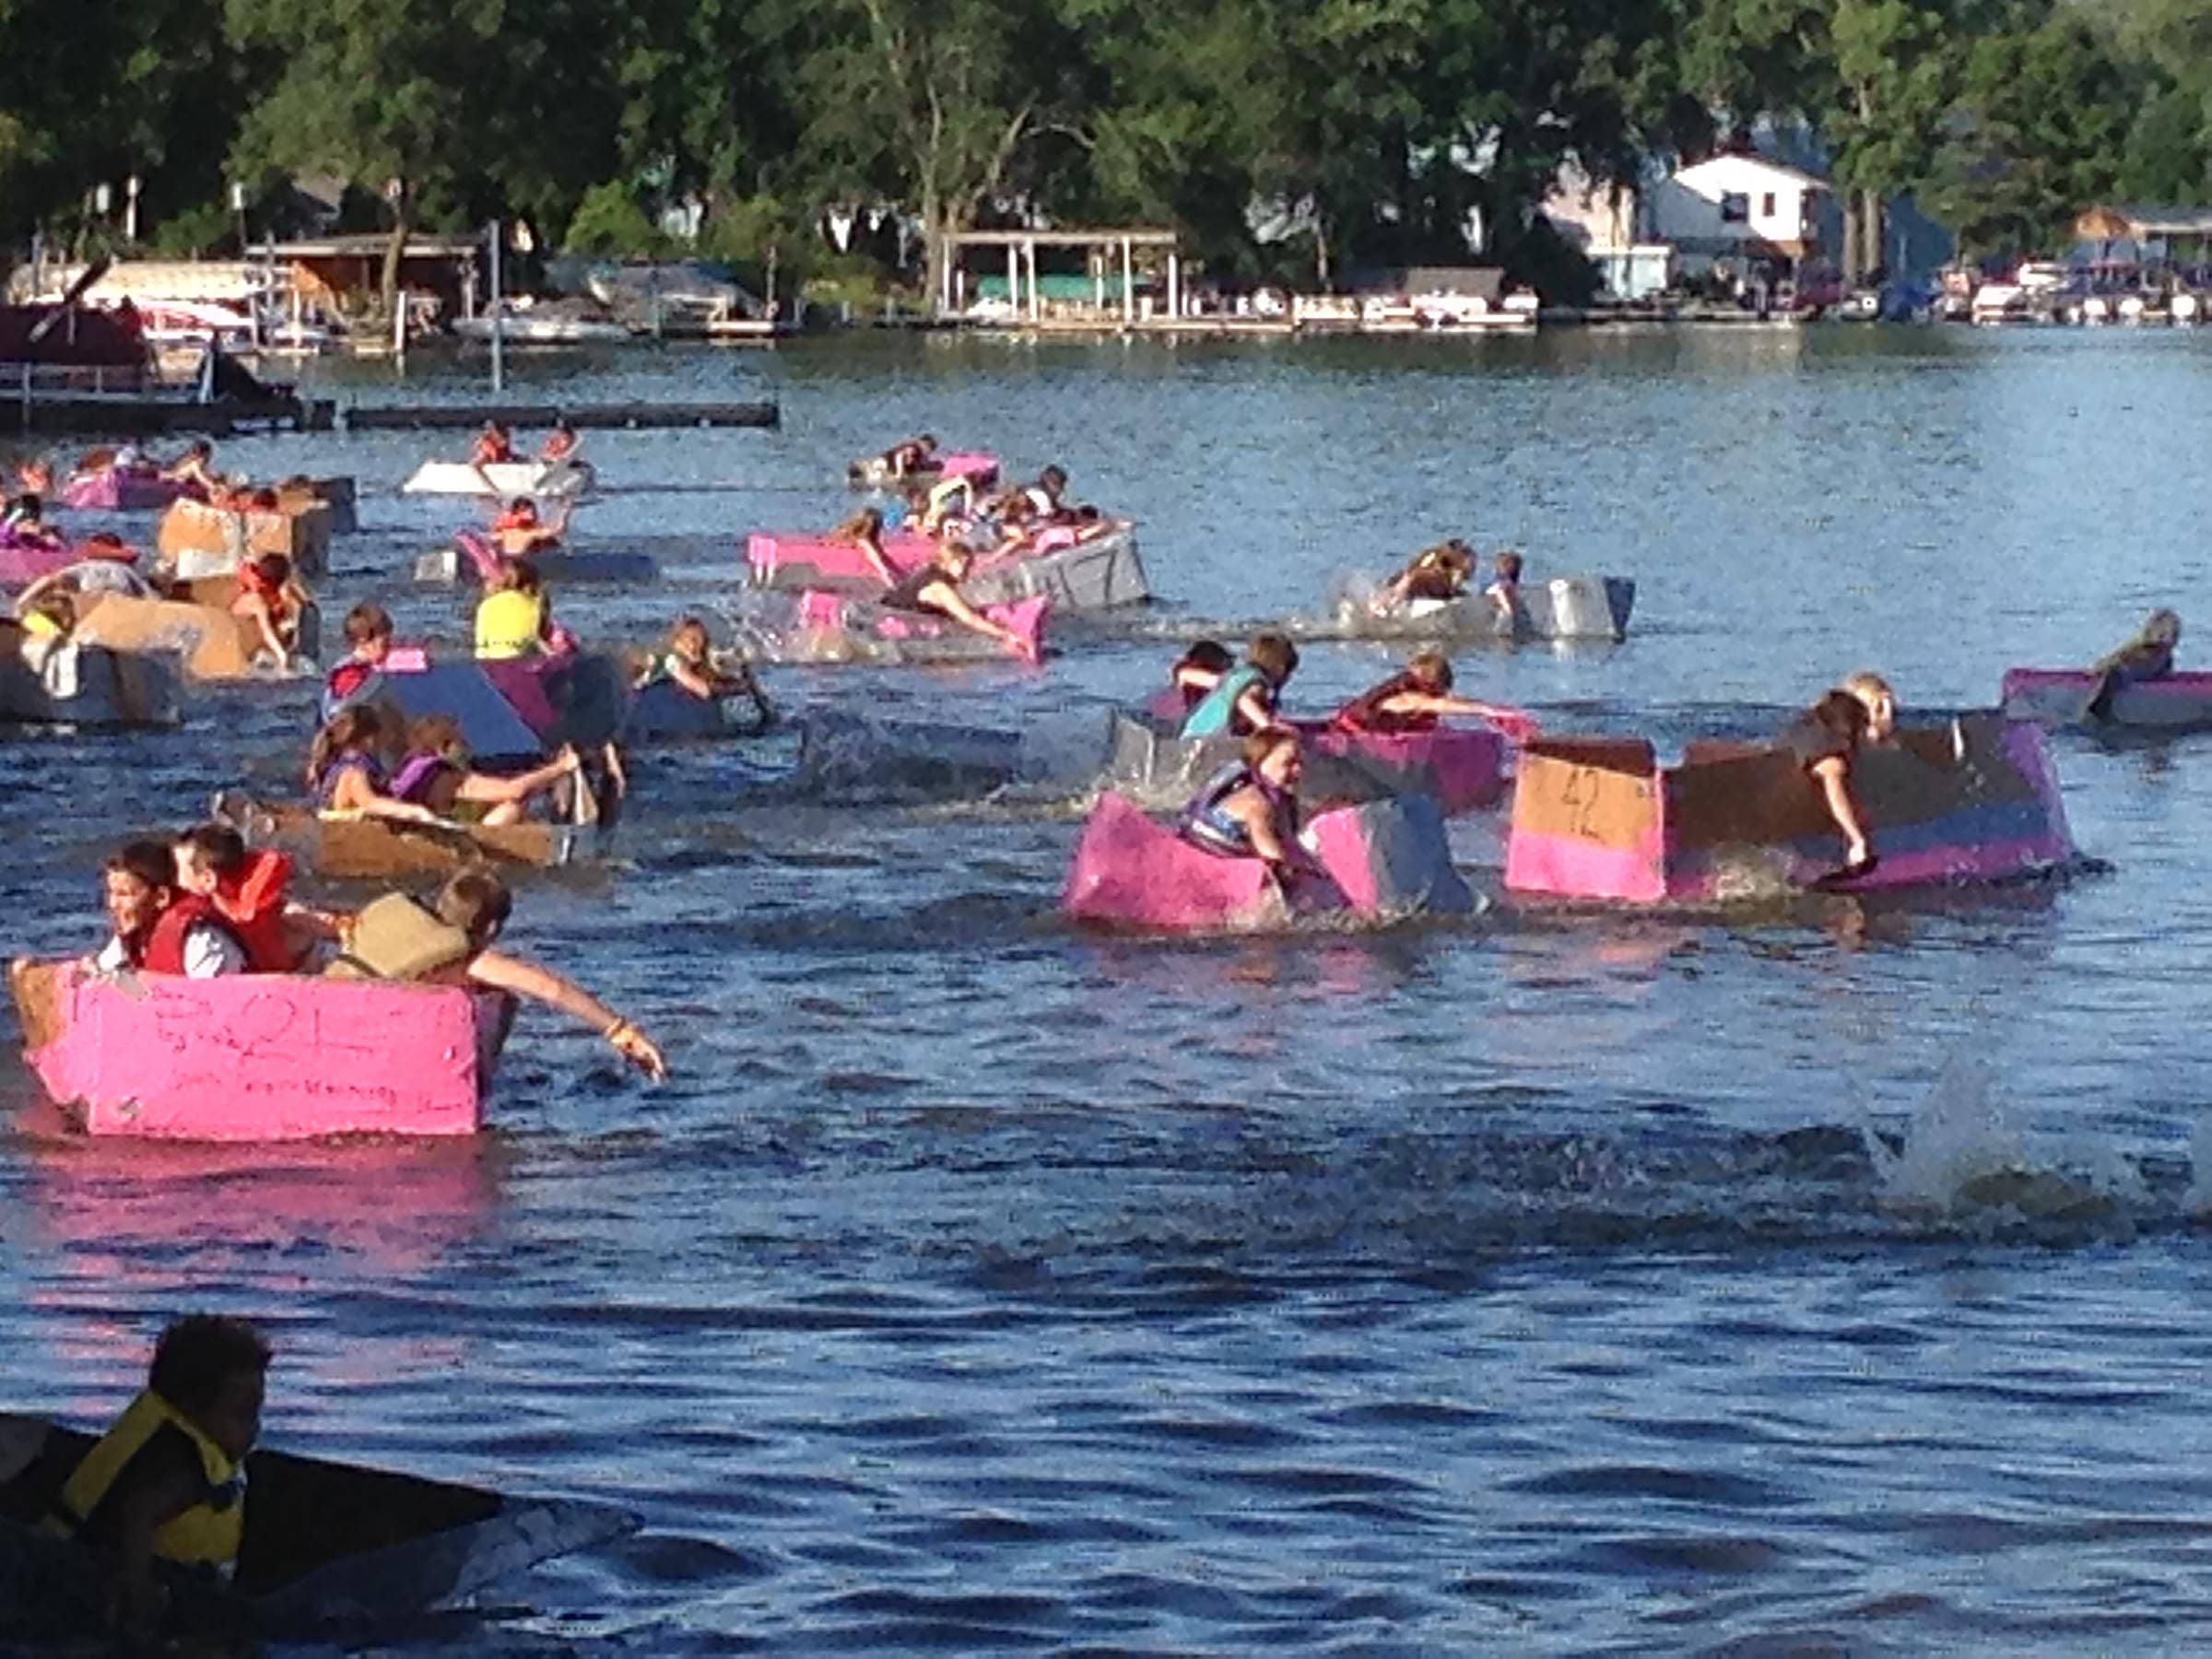 Competitors in the Pee Wee division leave the shore during the Founders Day Cardboard Boat Regatta Thursday along the Fox River in Algonquin. Each racer had 2½ hours to build their boat.